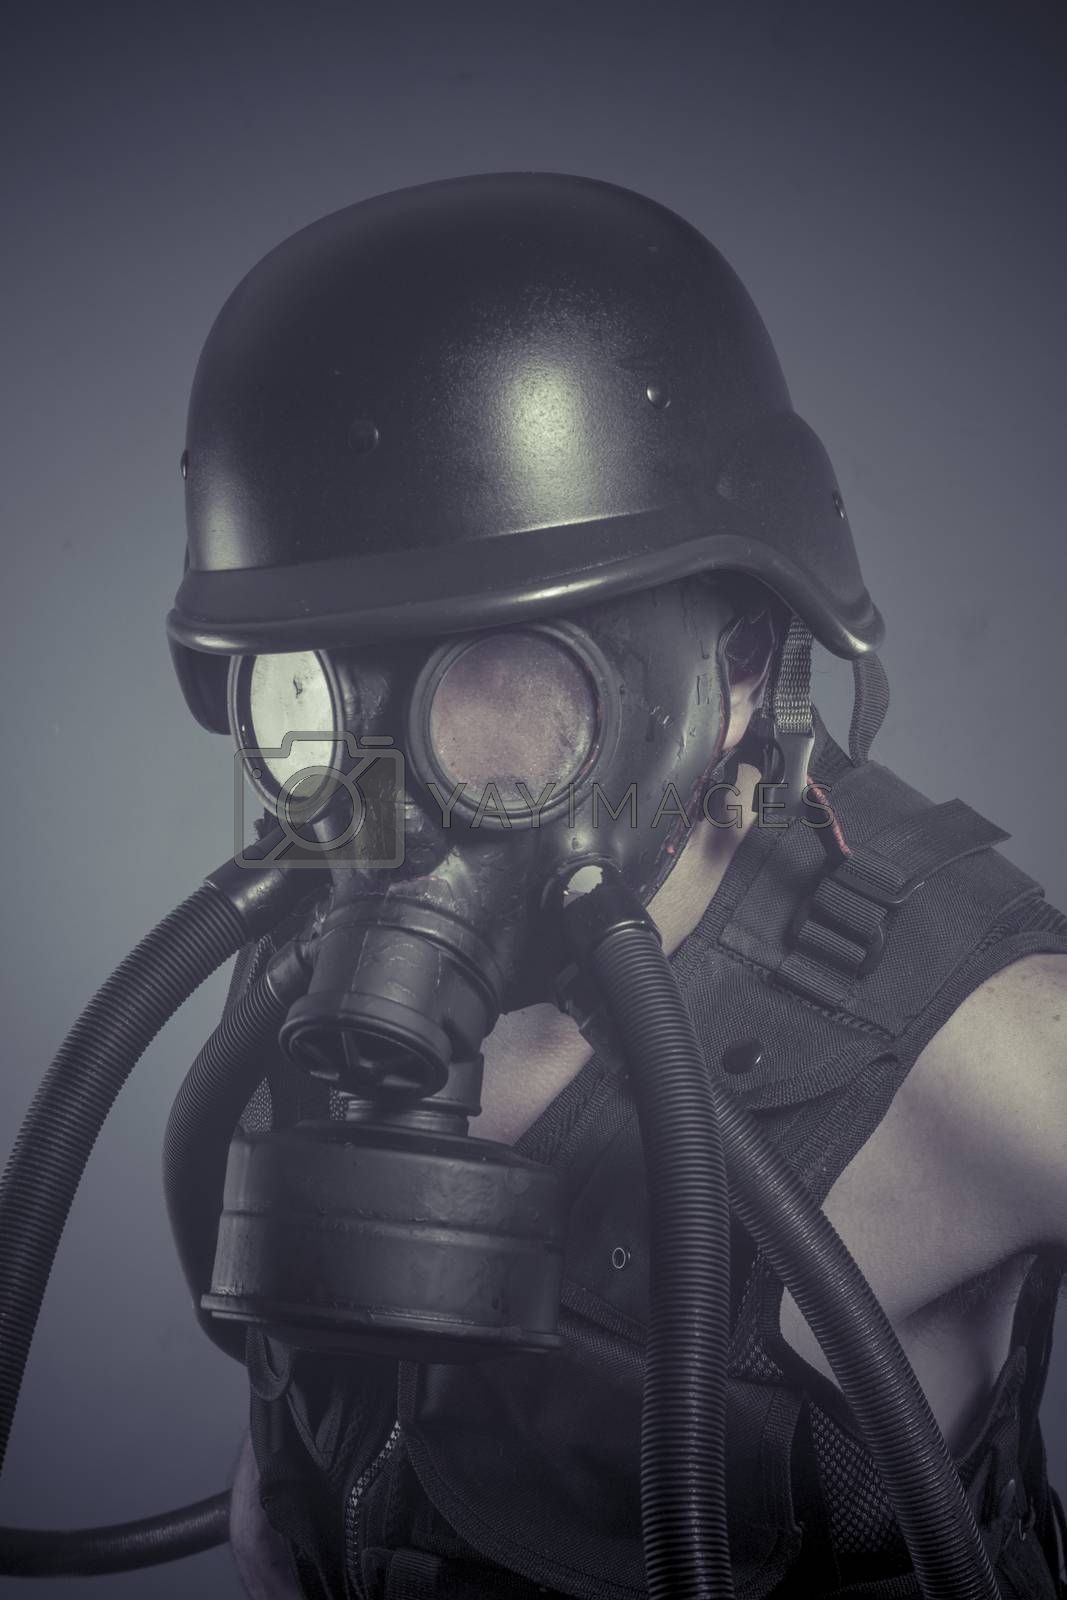 Inhalation, Man with black gas mask, pollution concept and ecolo by FernandoCortes